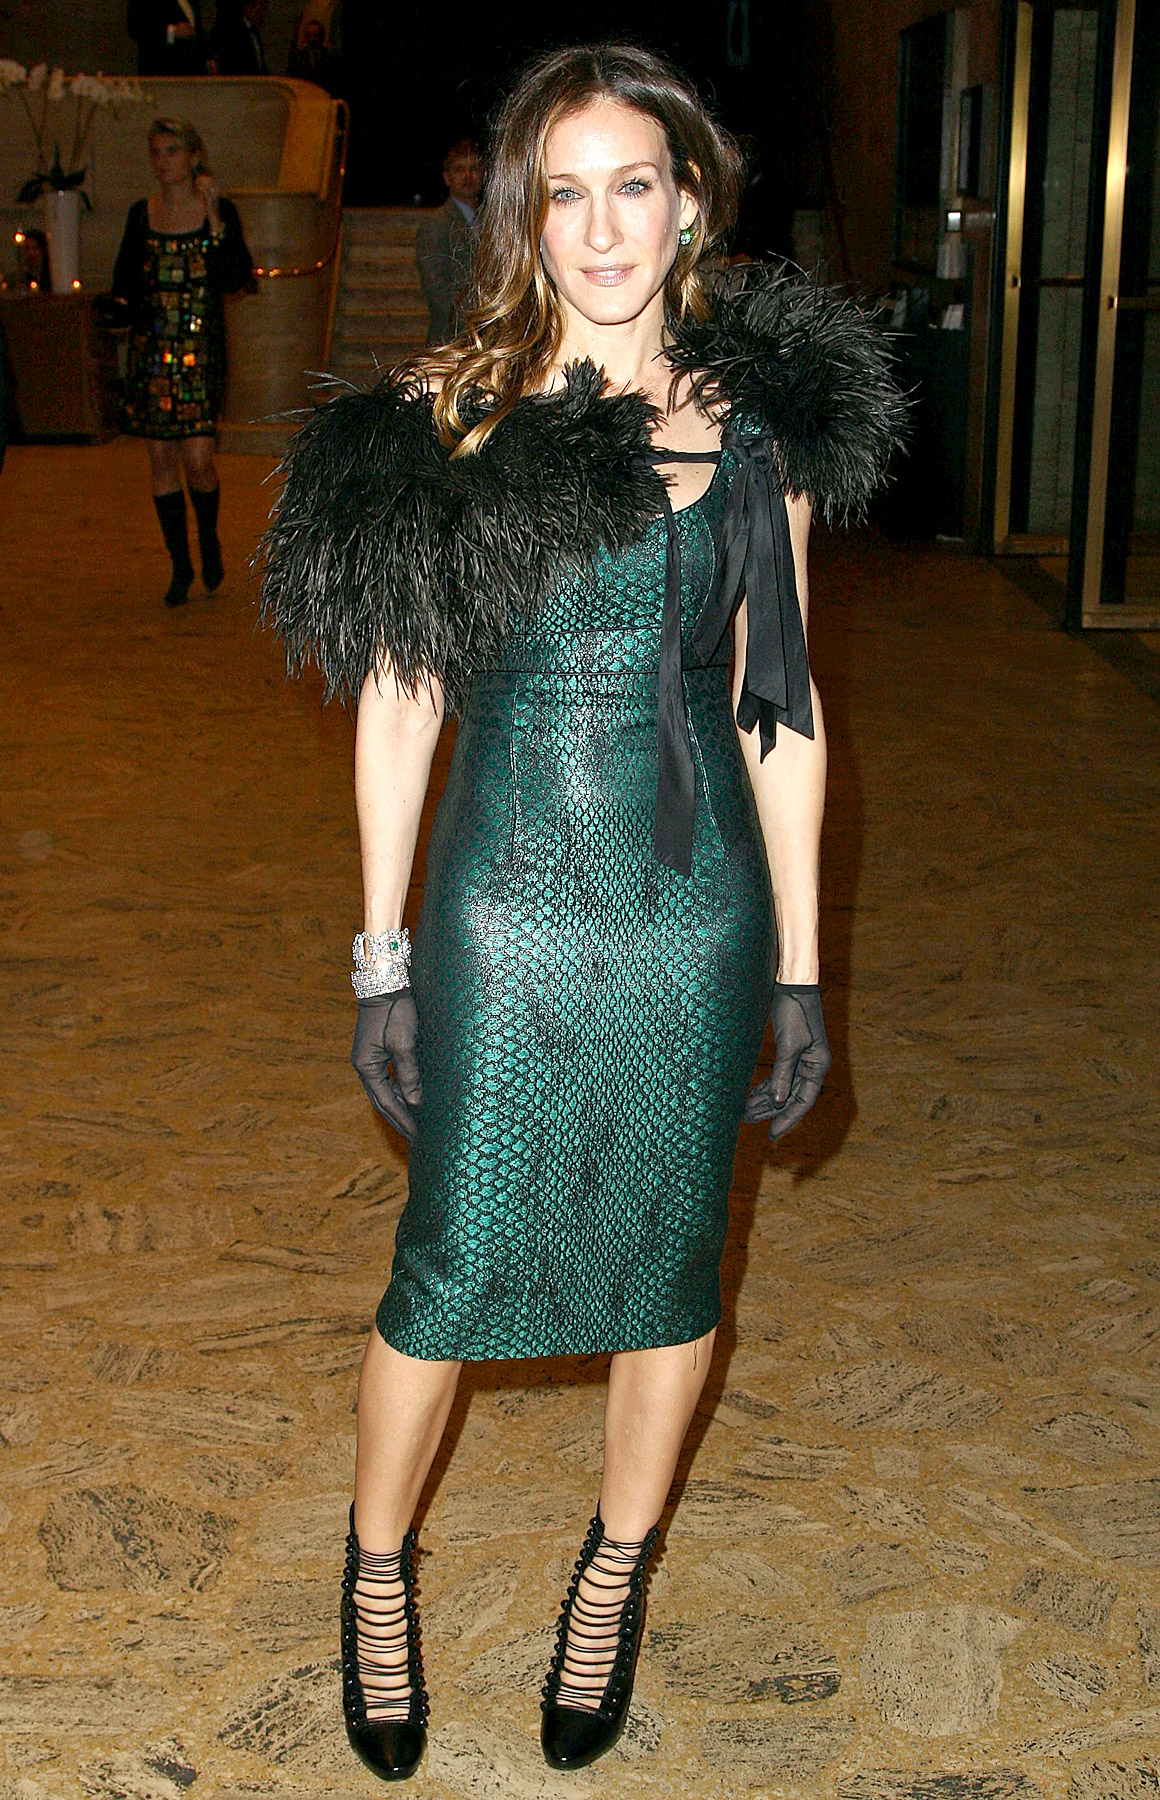 The mother of three went for an edgy emerald green, snakeskin L'Wren Scott dress with a black fur wrap and lace-up pumps at the School of American Ballet's winter ball on March 9, 2009.